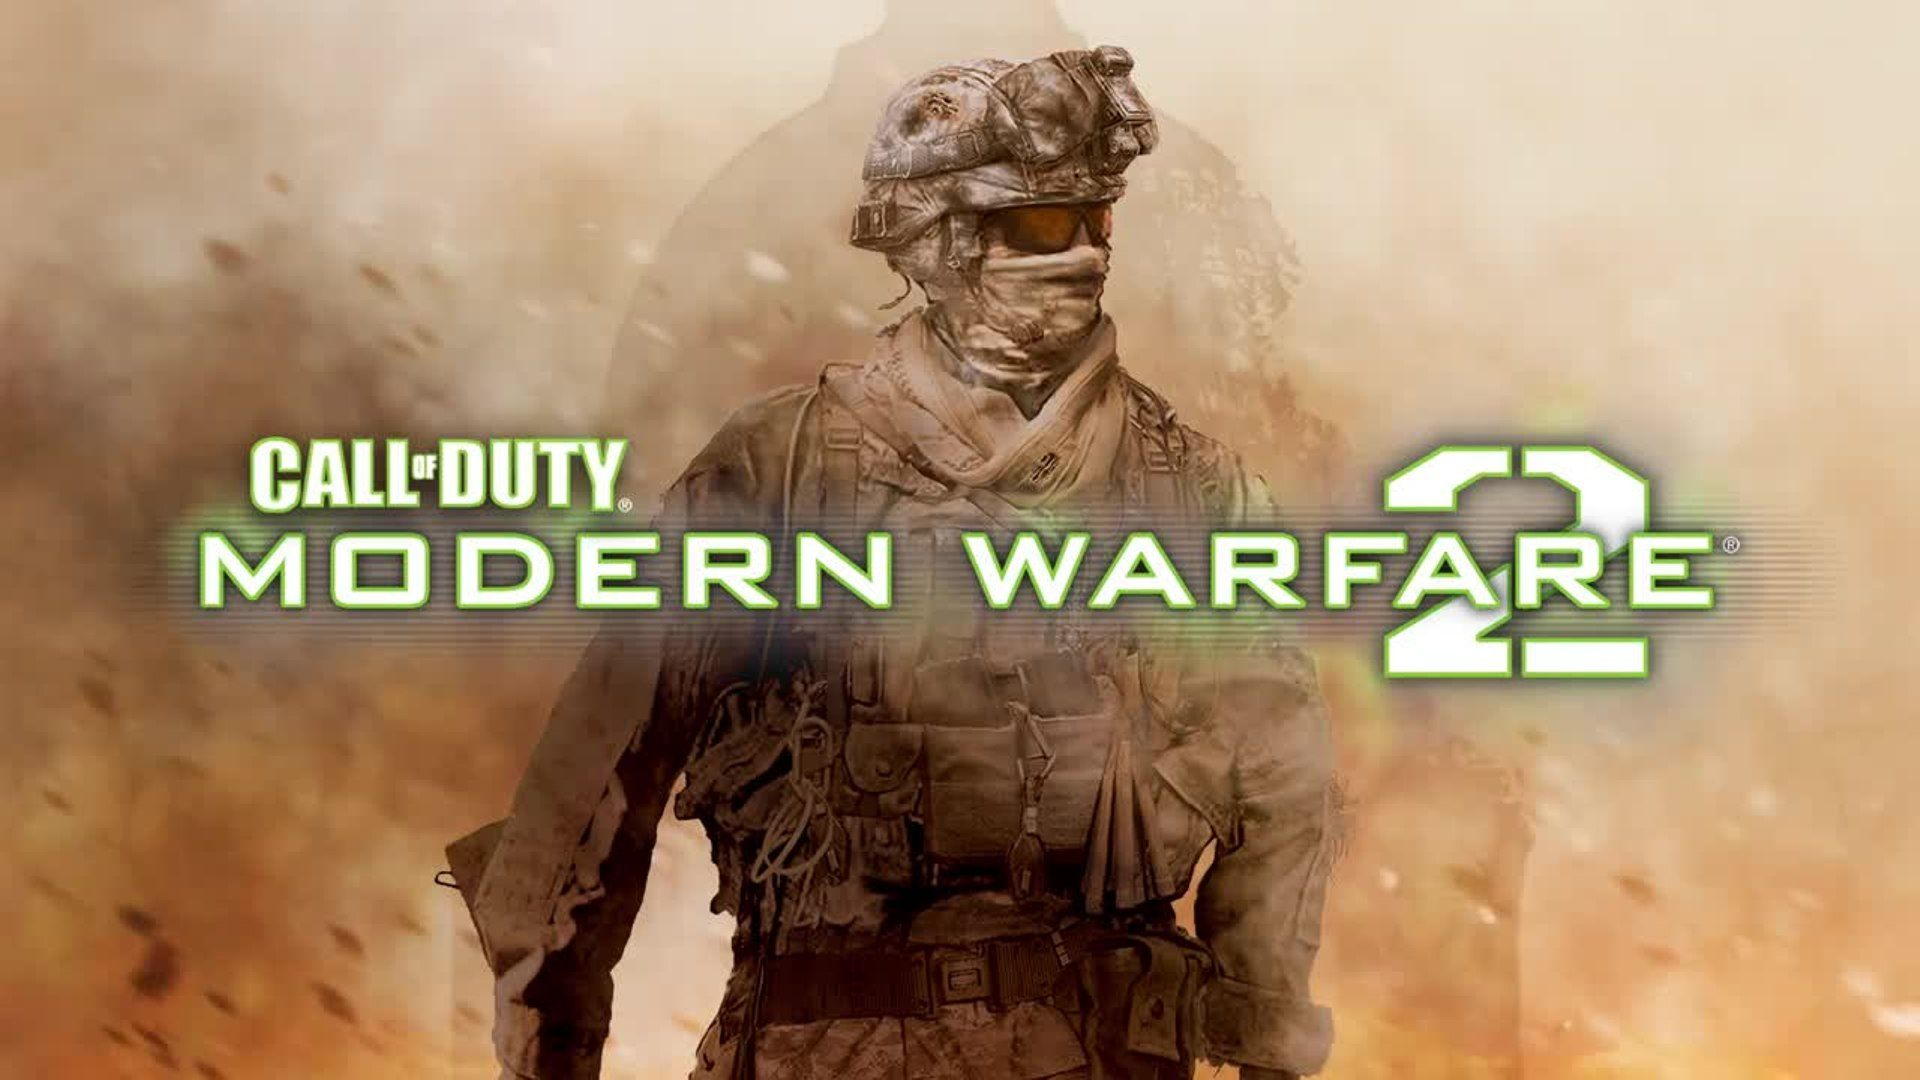 Modern Warfare II may be the title of Call of Duty 2022, confusingly